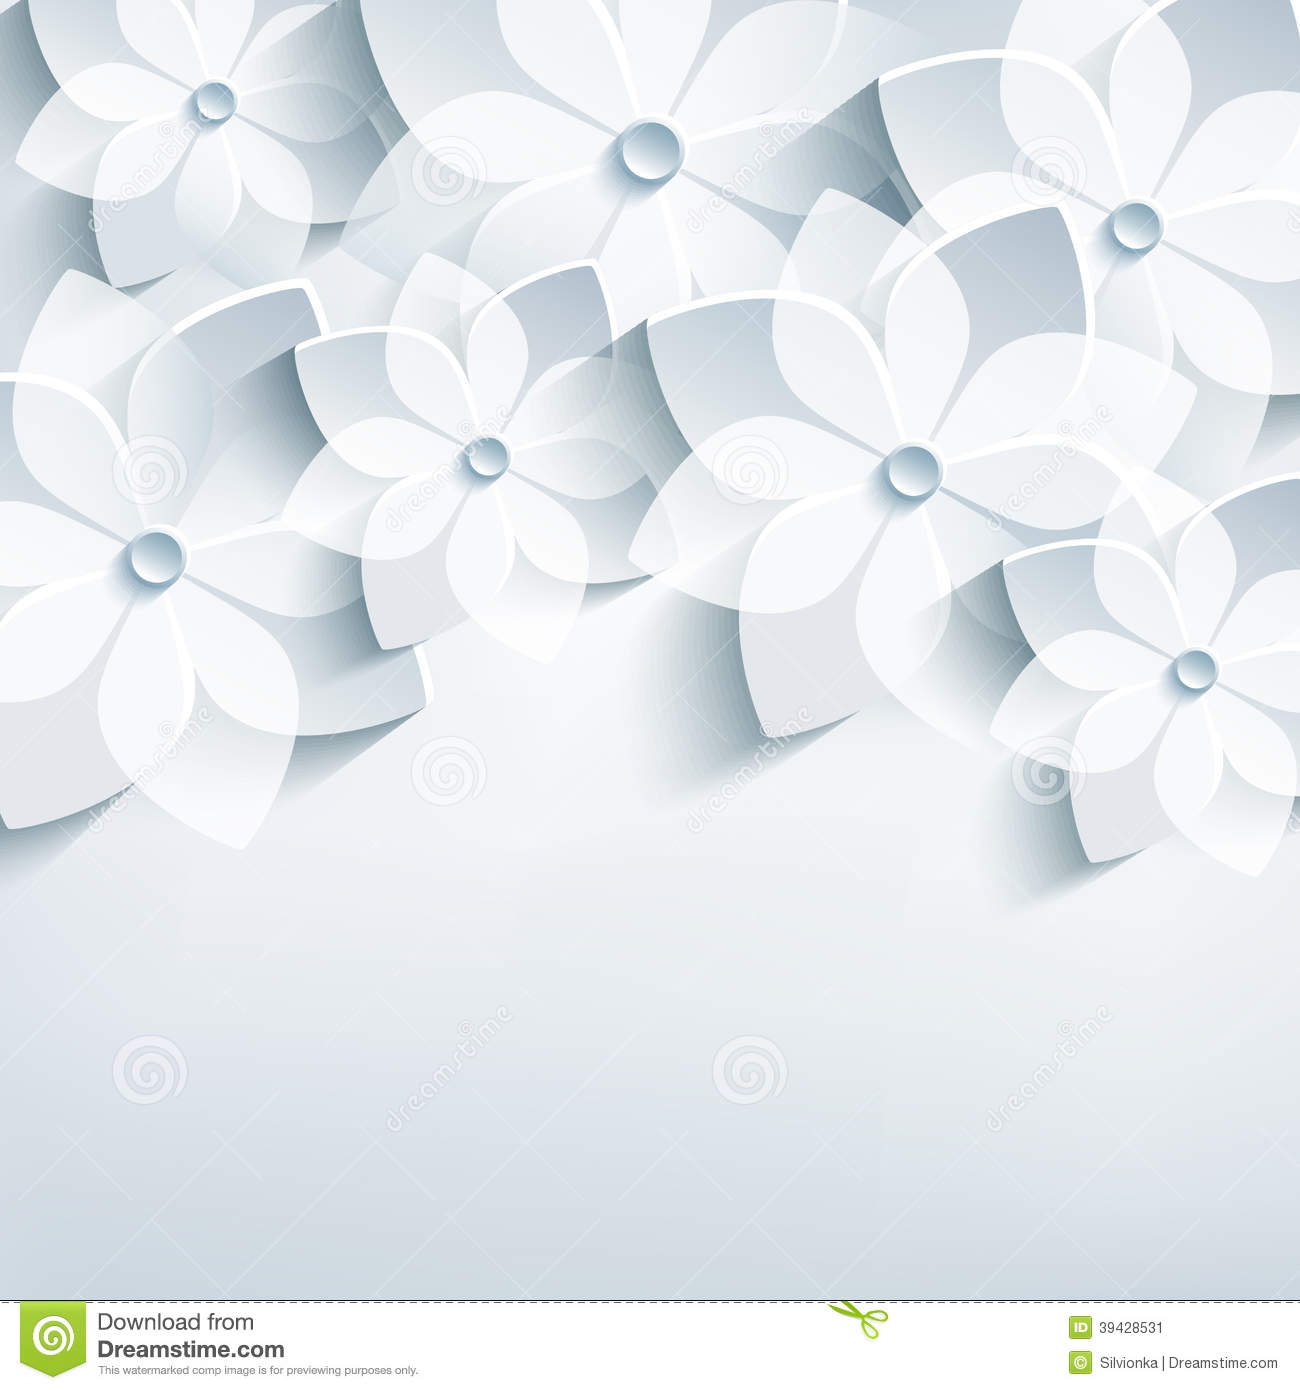 D background images - Floral Abstract Background 3d Stylized Flowers Sa Stock Vector